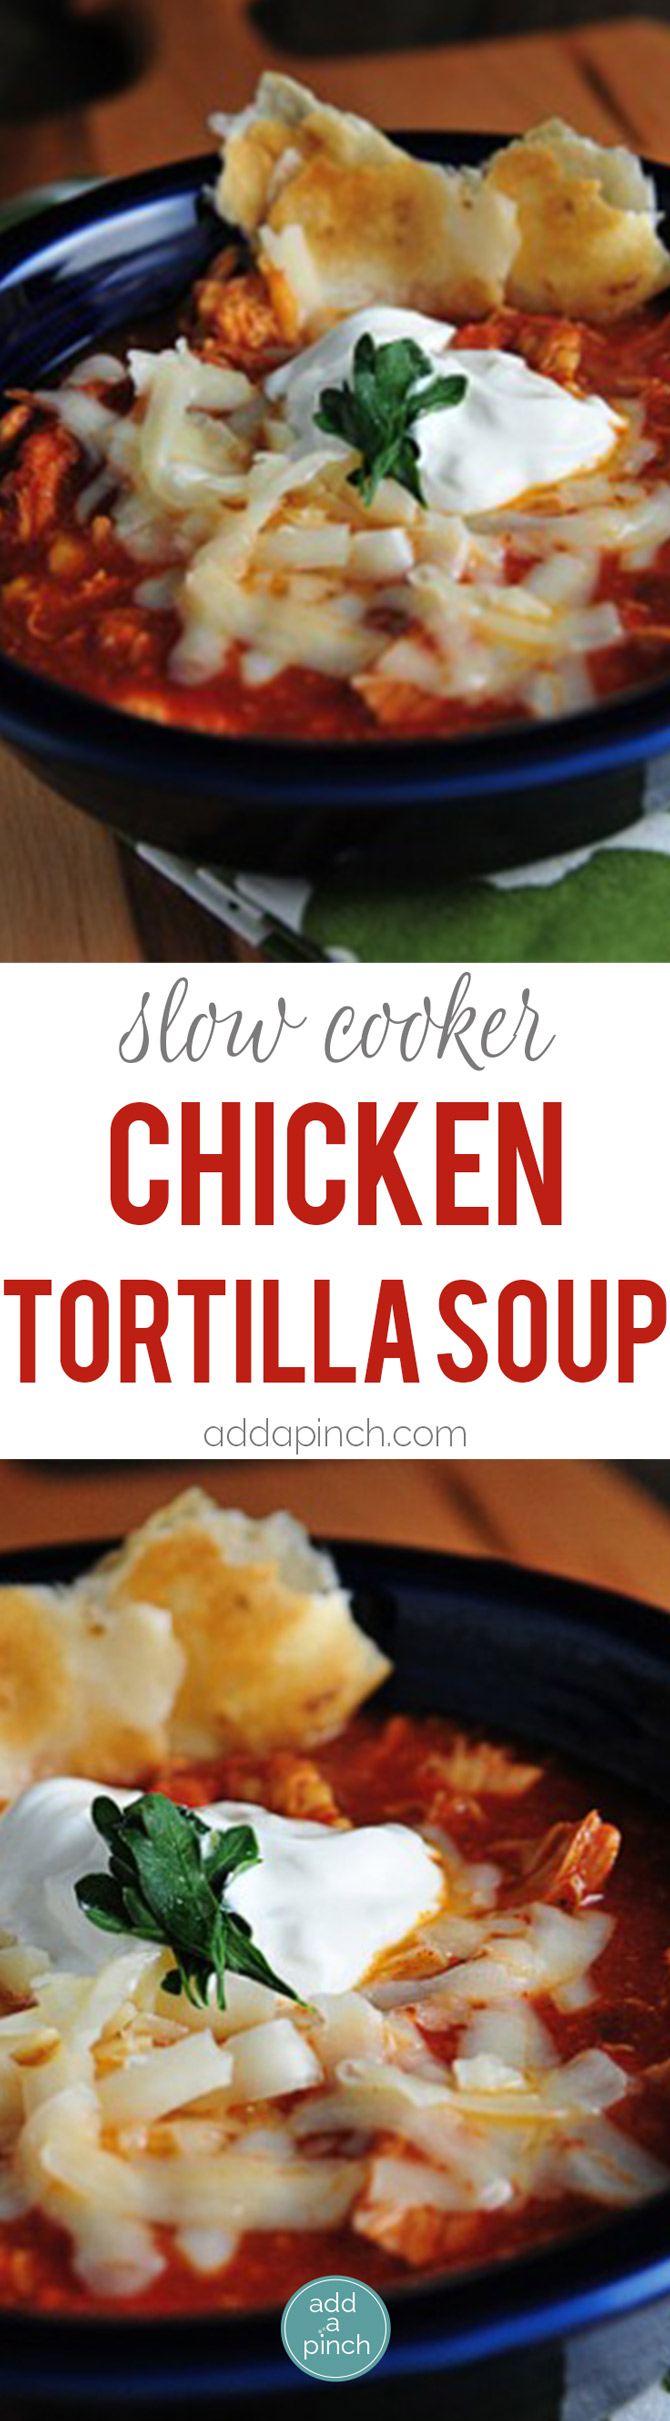 Slow Cooker Chicken Tortilla Soup Recipe - Chicken Tortilla Soup makes a scrumptious soup with little effort. This easy chicken tortilla soup is simple, spicy and scrumptious. // addapinch.com